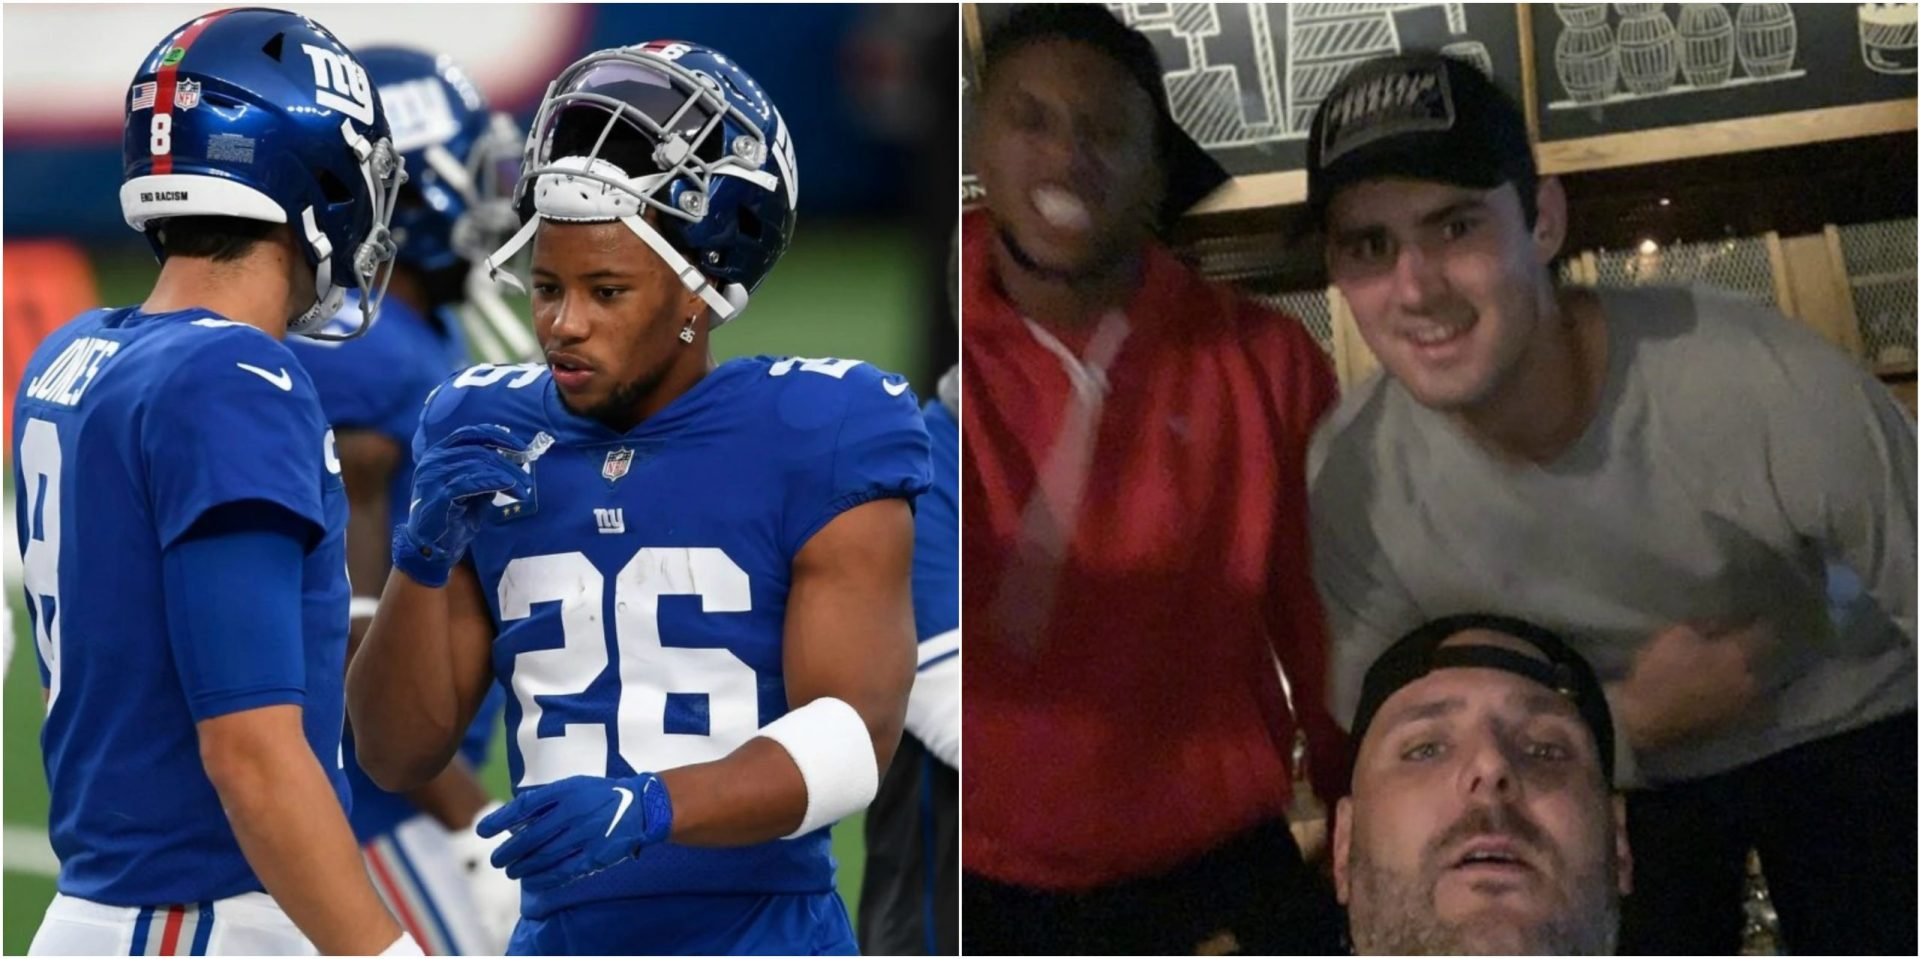 Photos and Videos surface of 2 New York Giants players partying without masks - THE SPORTS ROOM